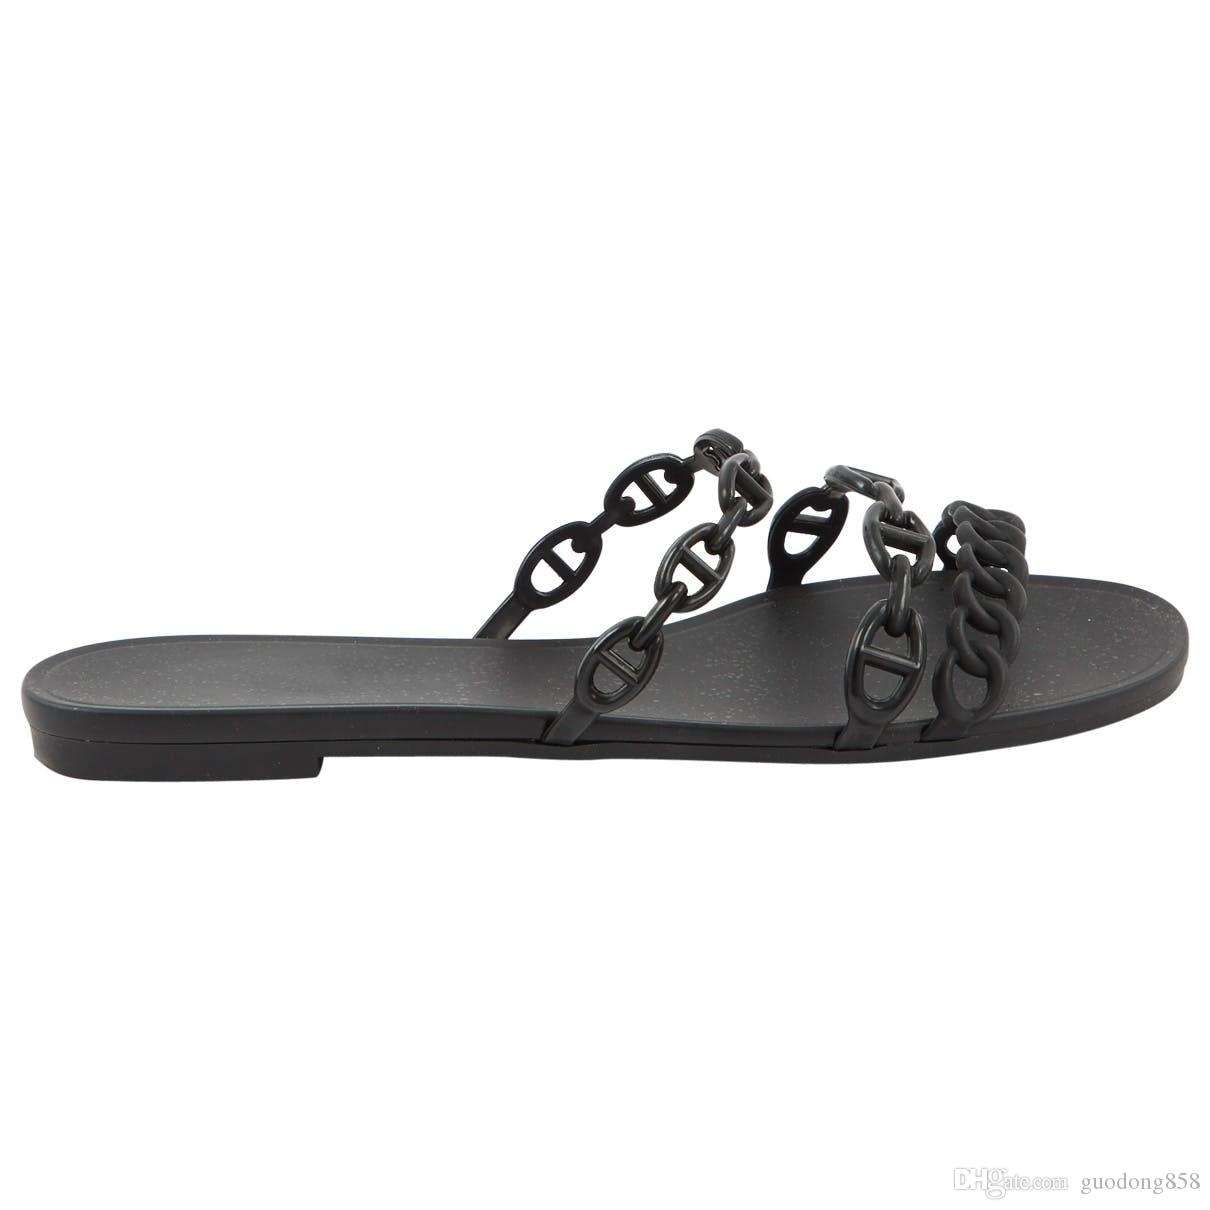 74f4fa8656b1 New Arrival Womens Pre Owned Nude Black Leather Sandals Girls Street  Fashion Flat Slippers Flip Flops Size Euro 35 41 Cheap Boots High Heel Shoes  From ...